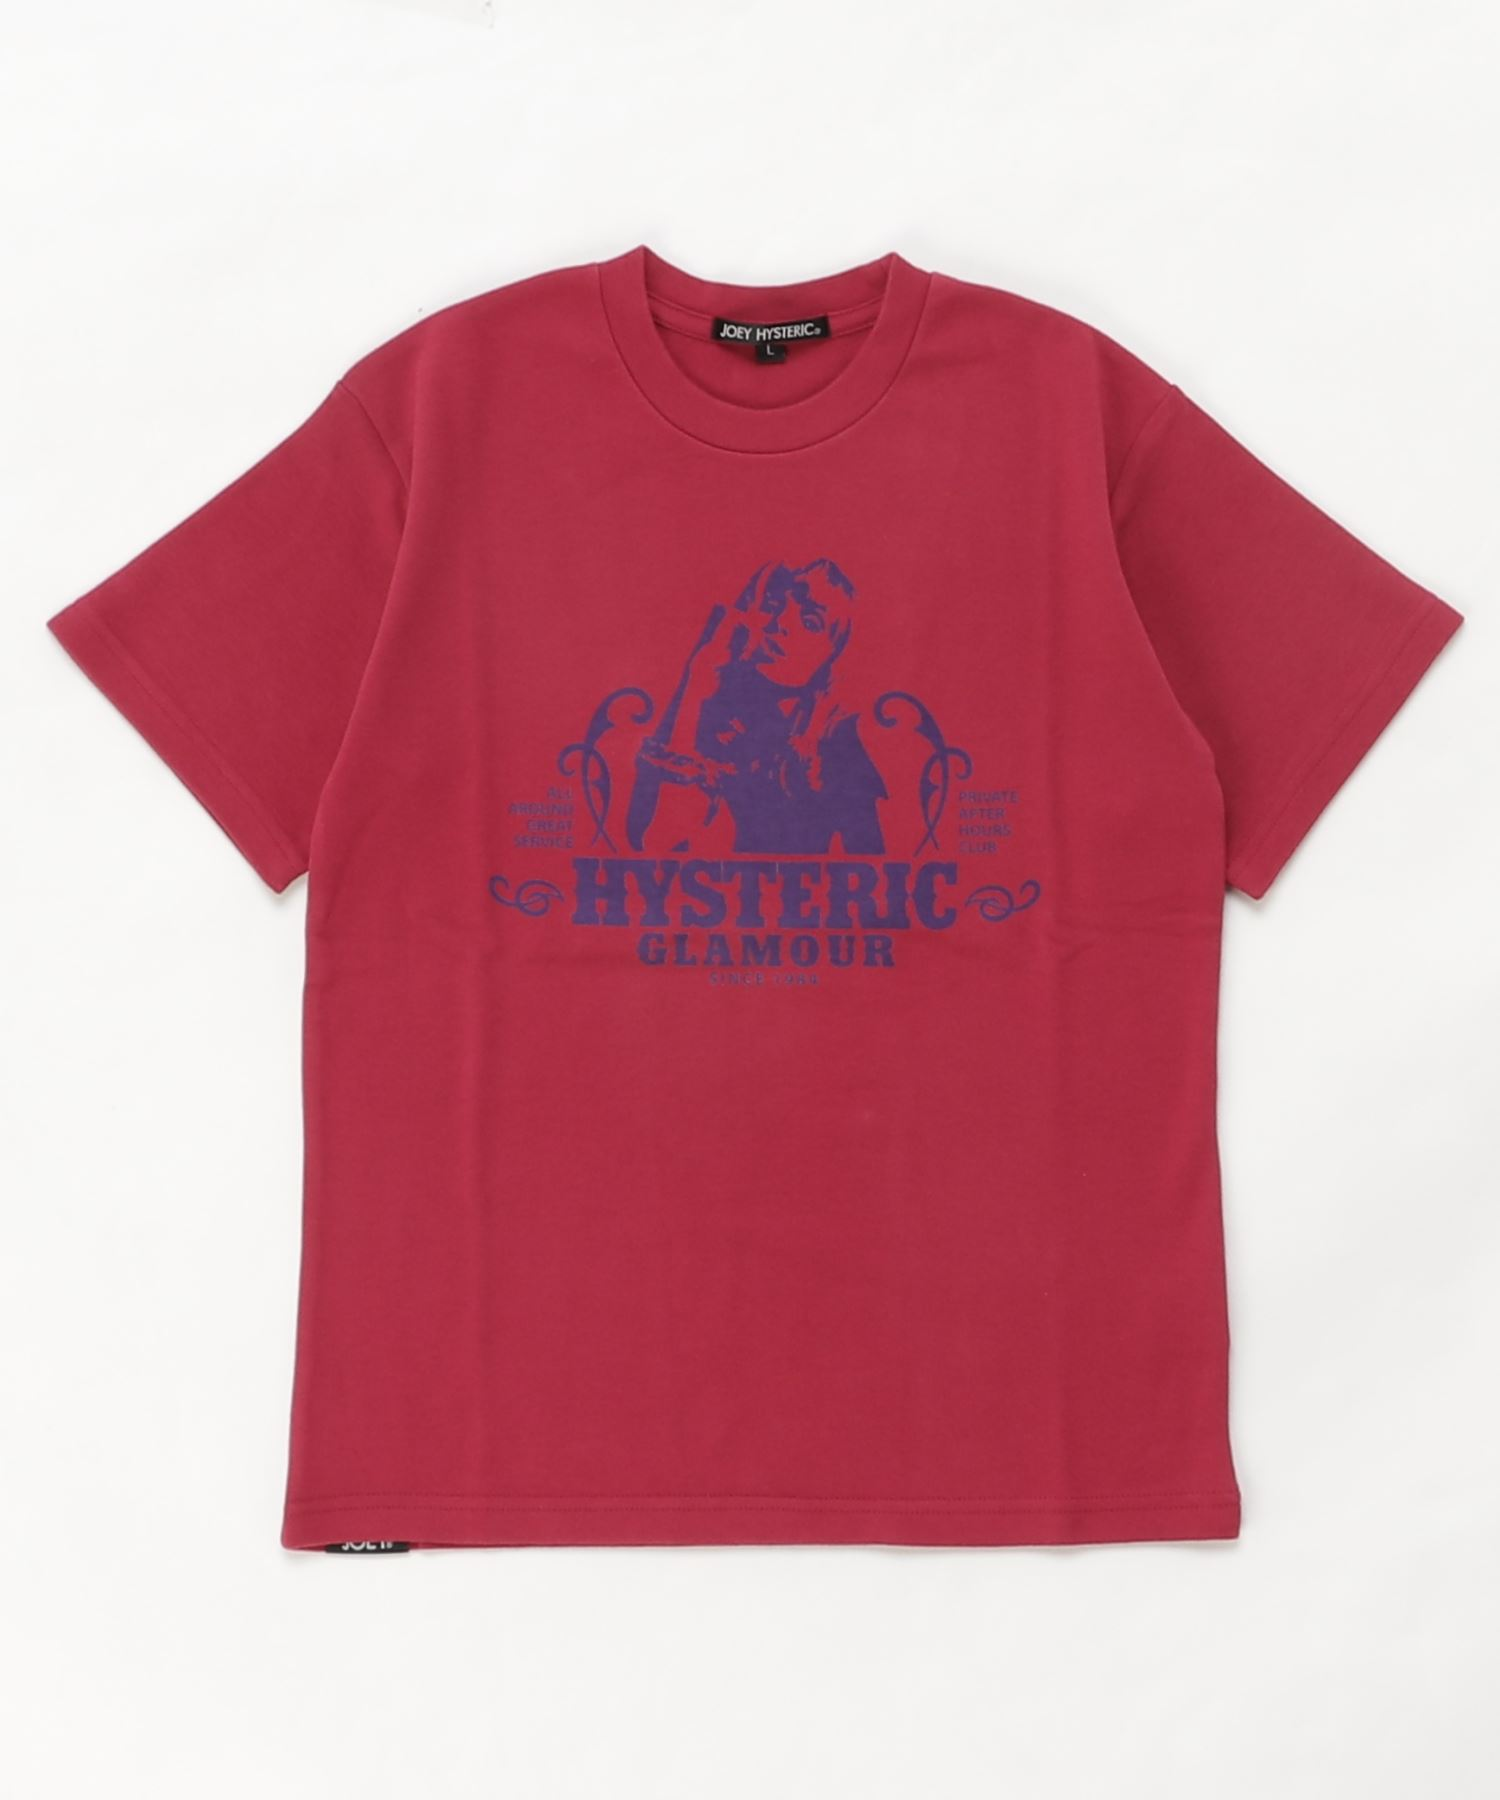 PRIVATE CLUB Tシャツ【L】